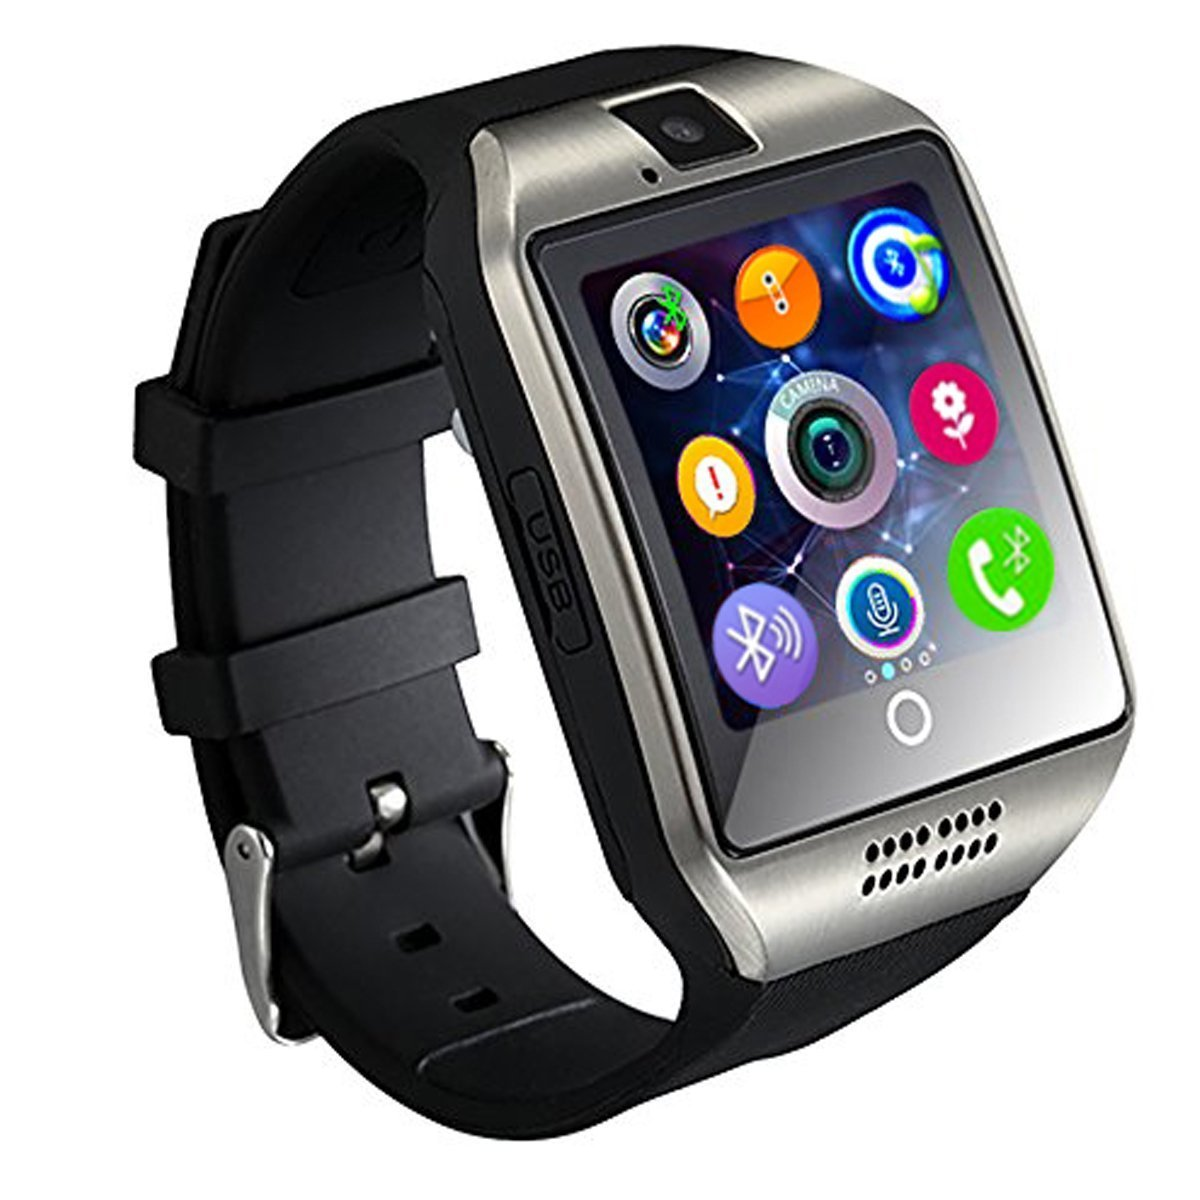 os watches android phone support card quad dp monitor com bluetooth gray gps rate black heart smart sim lemfo core camera wifi cell amazon watch